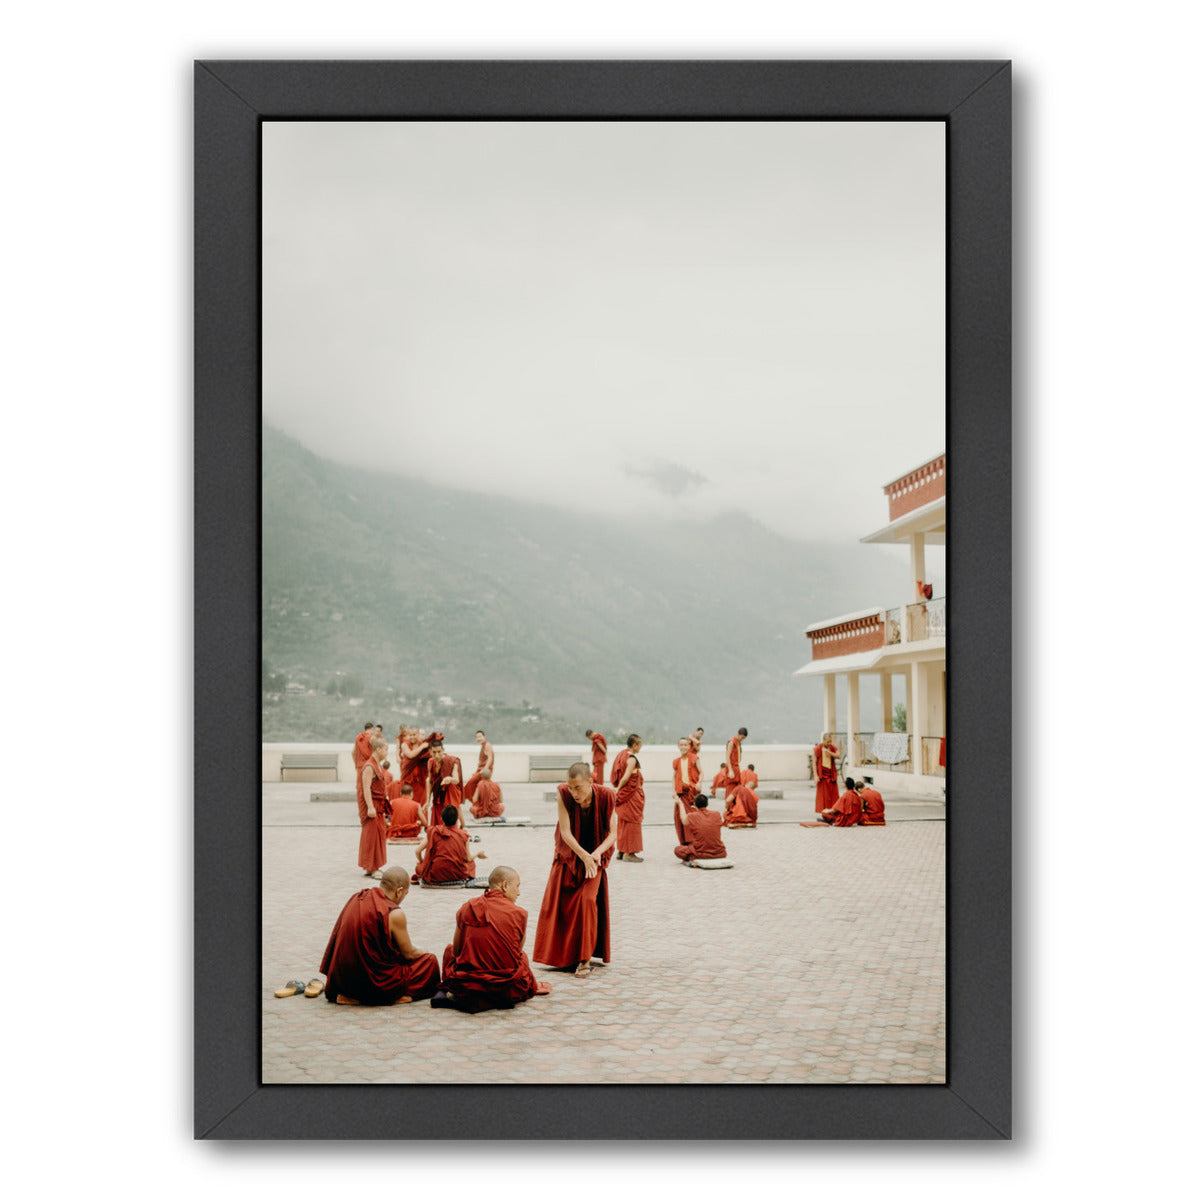 India By Natalie Allen - Black Framed Print - Wall Art - Americanflat